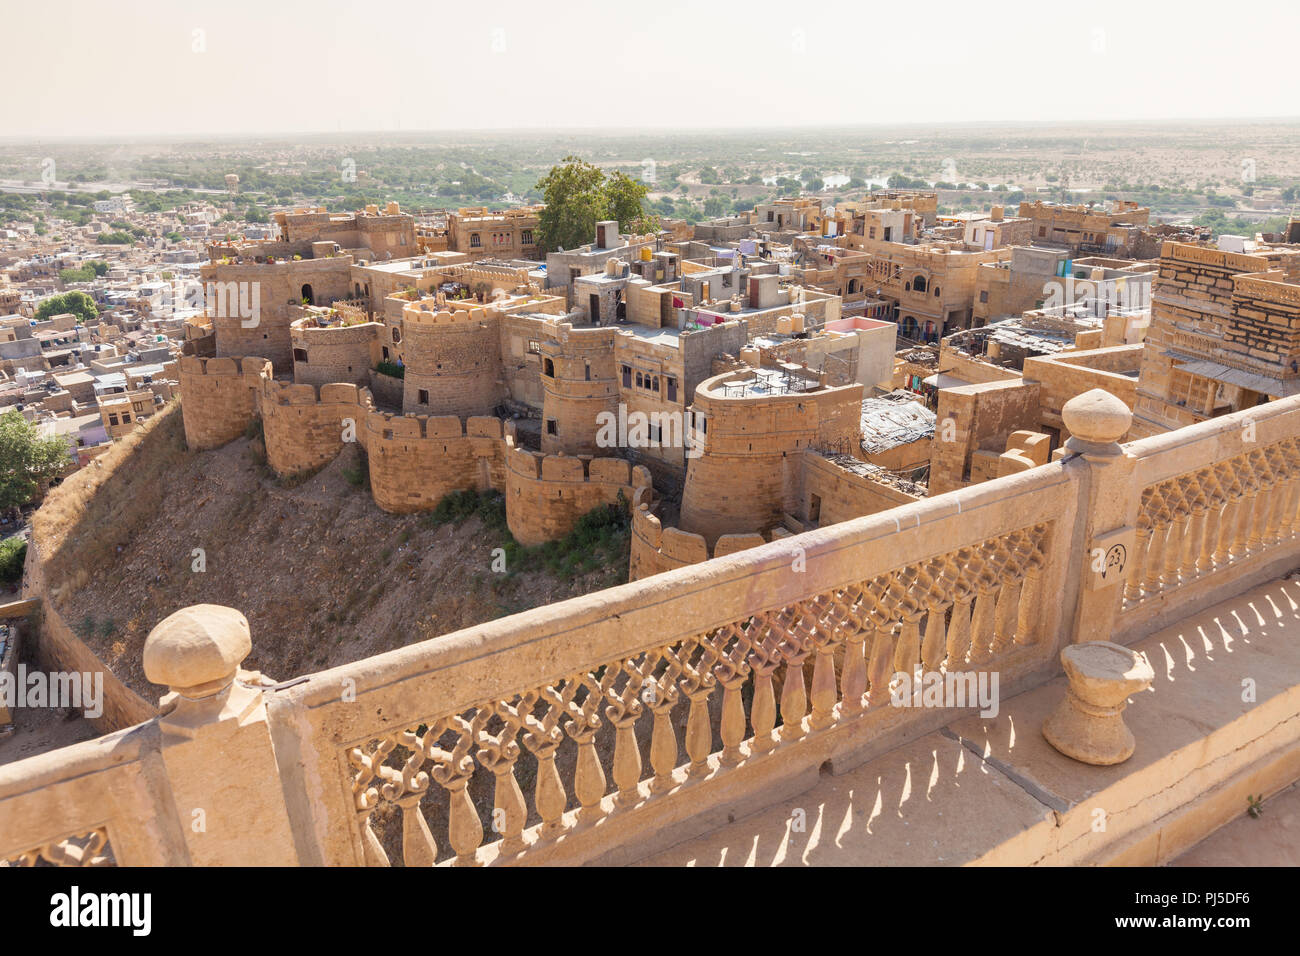 Jaisalmer, India - Stock Image